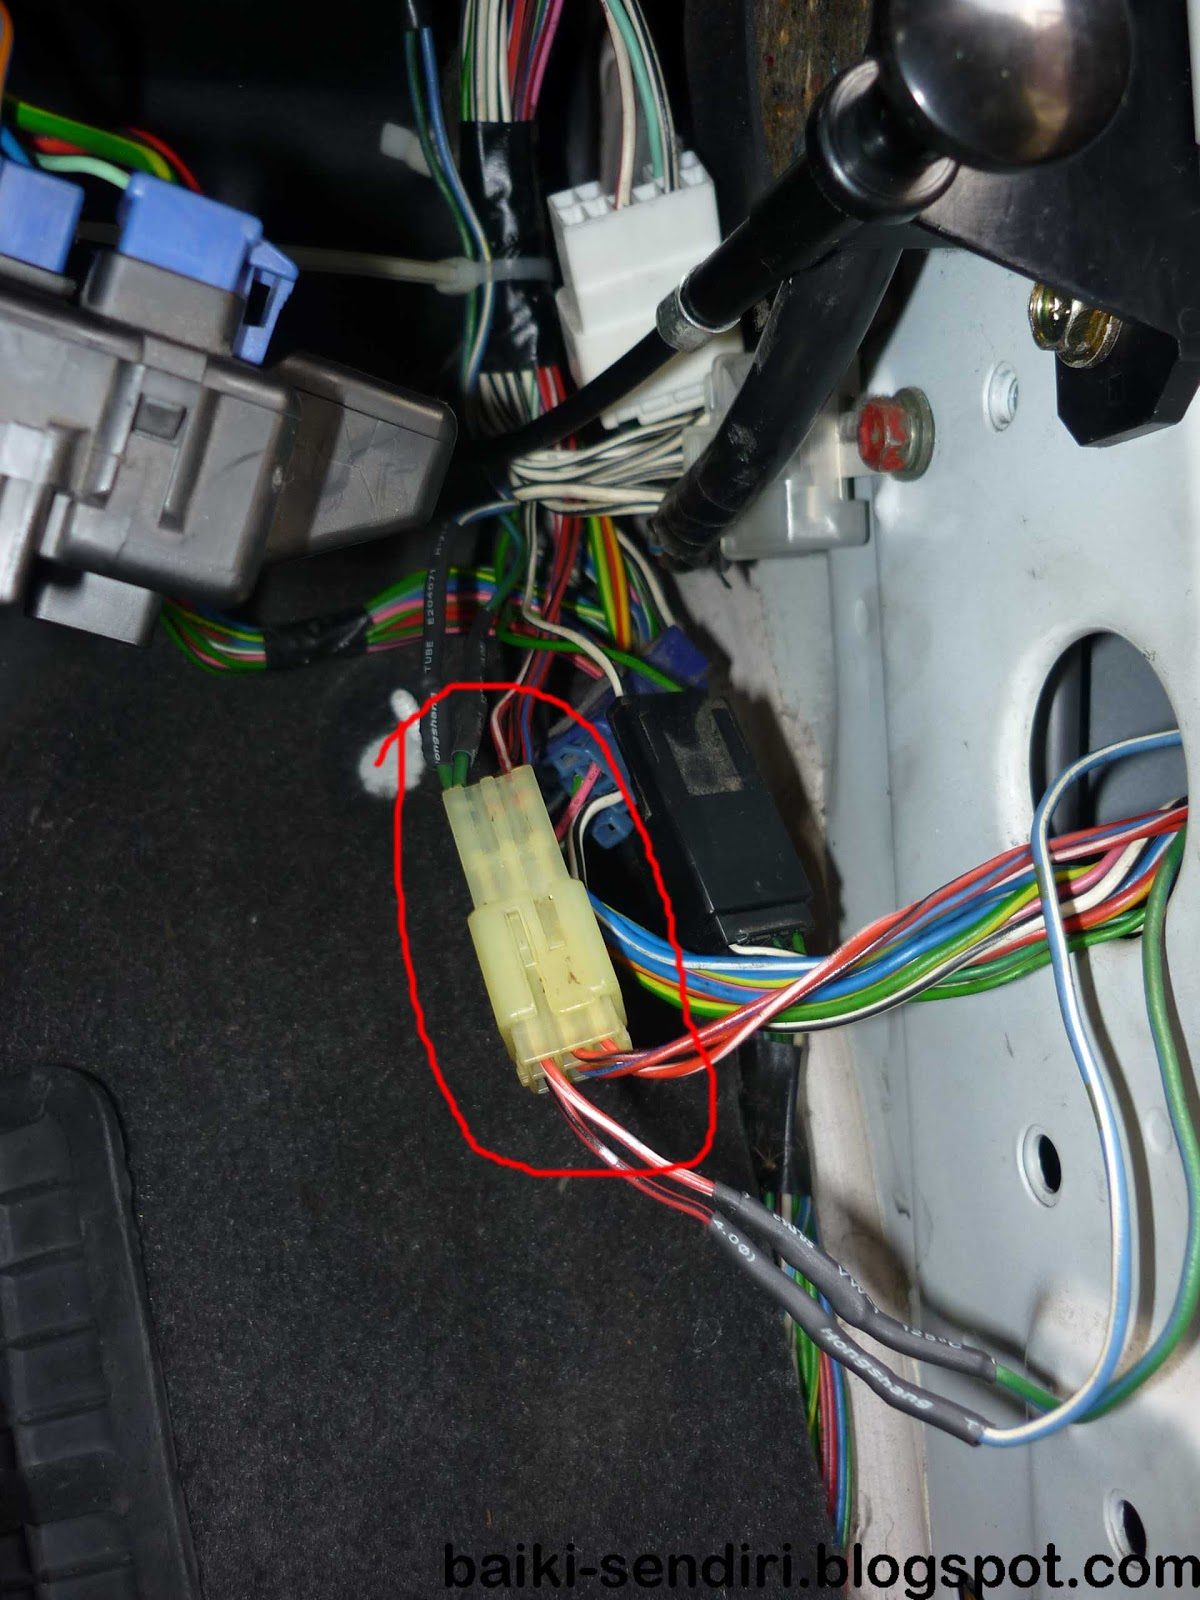 Diy Fix On Your Own Daihatsu L7 Perodua Kelisa Autoflip Suzuki Carry Fuse Box Smart Wiring Diagrams In With Fully Manual Side Mirror Factory Left The Connector Find Suitable Wire And Plug